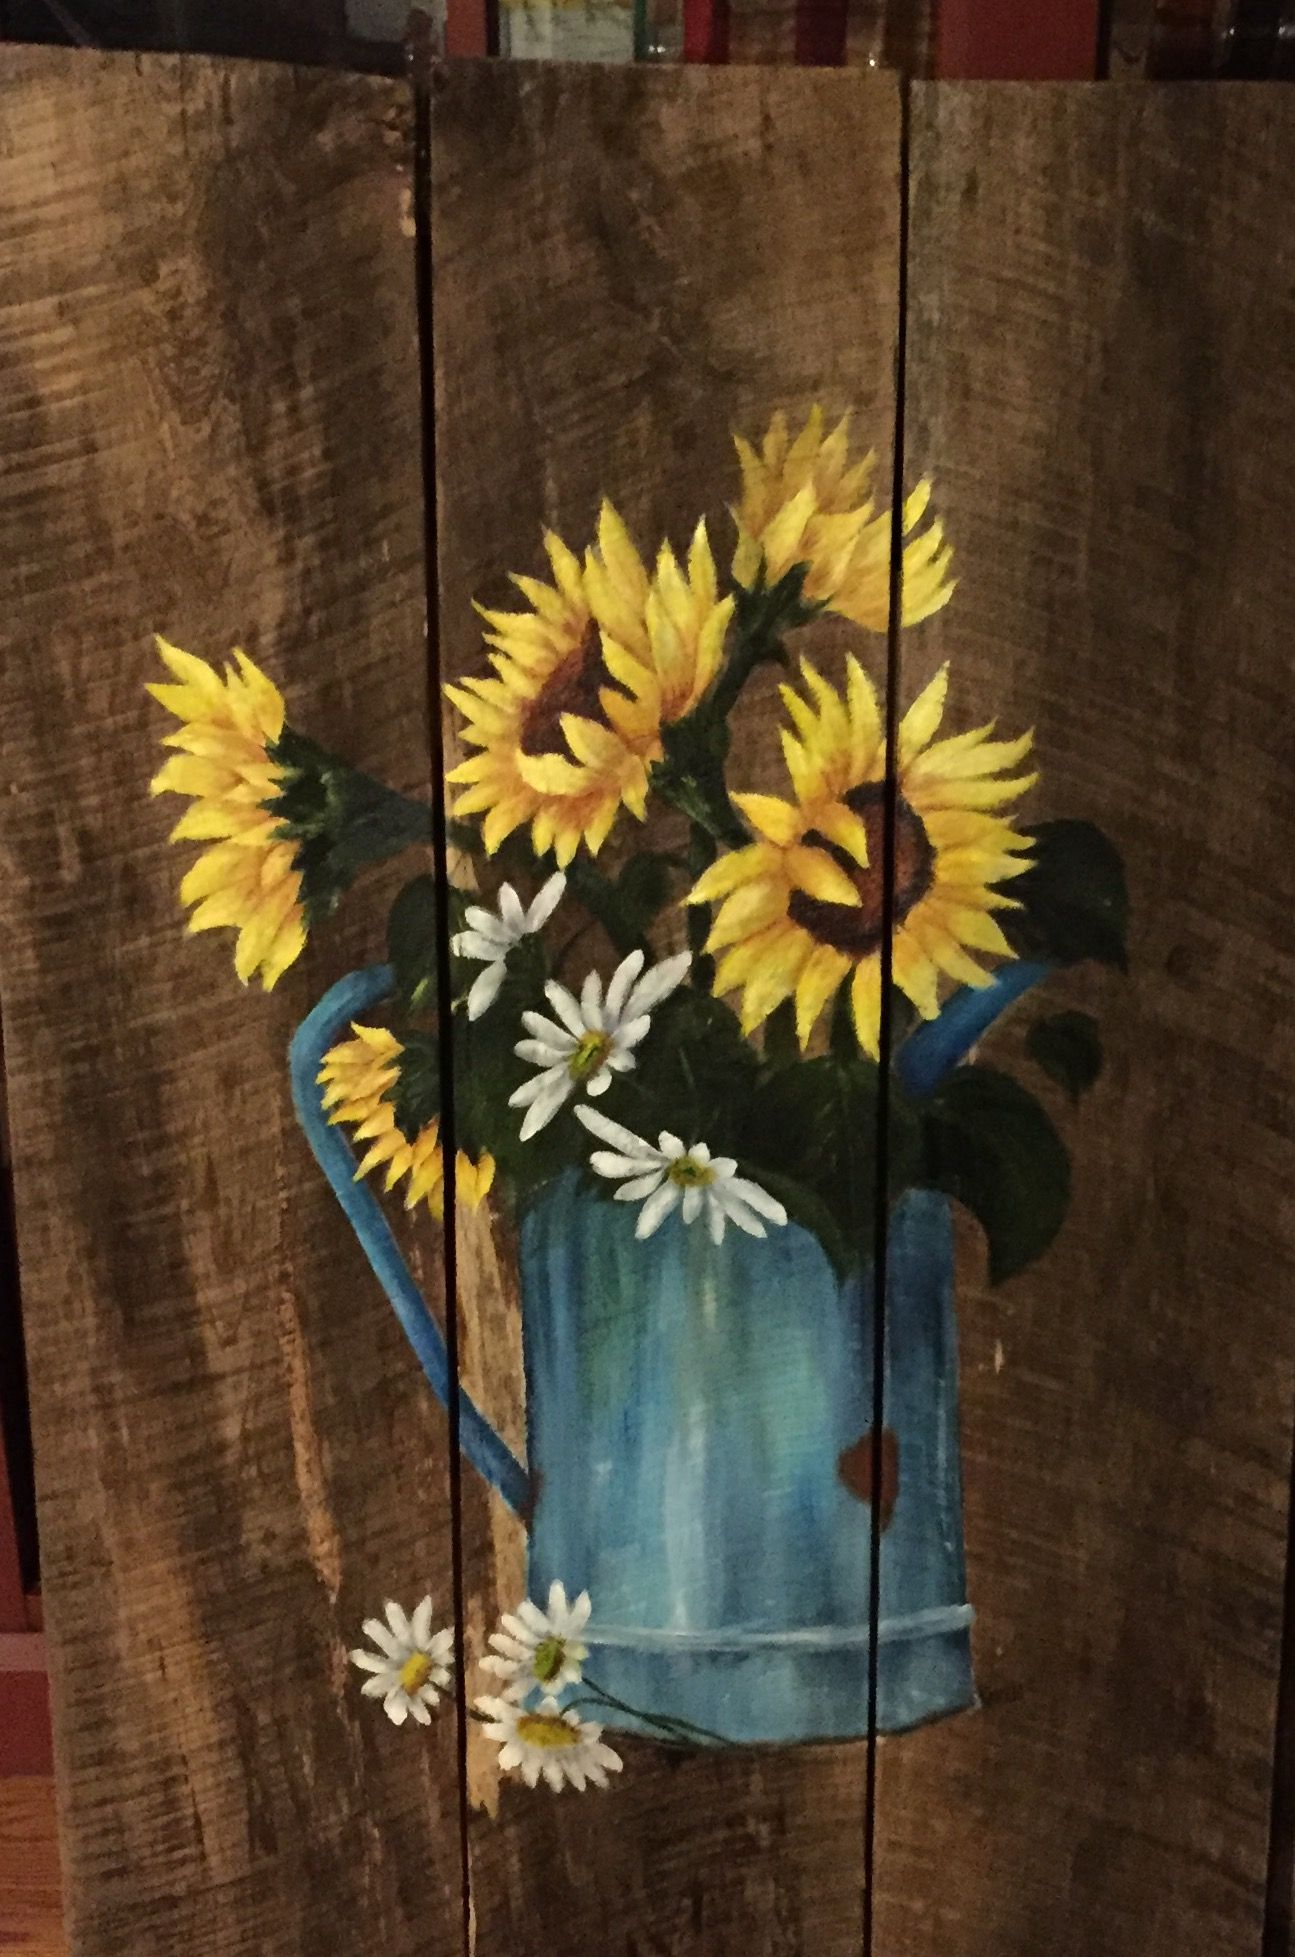 Hand painted sunflowers on barnwood | 0painted | Pinterest ...